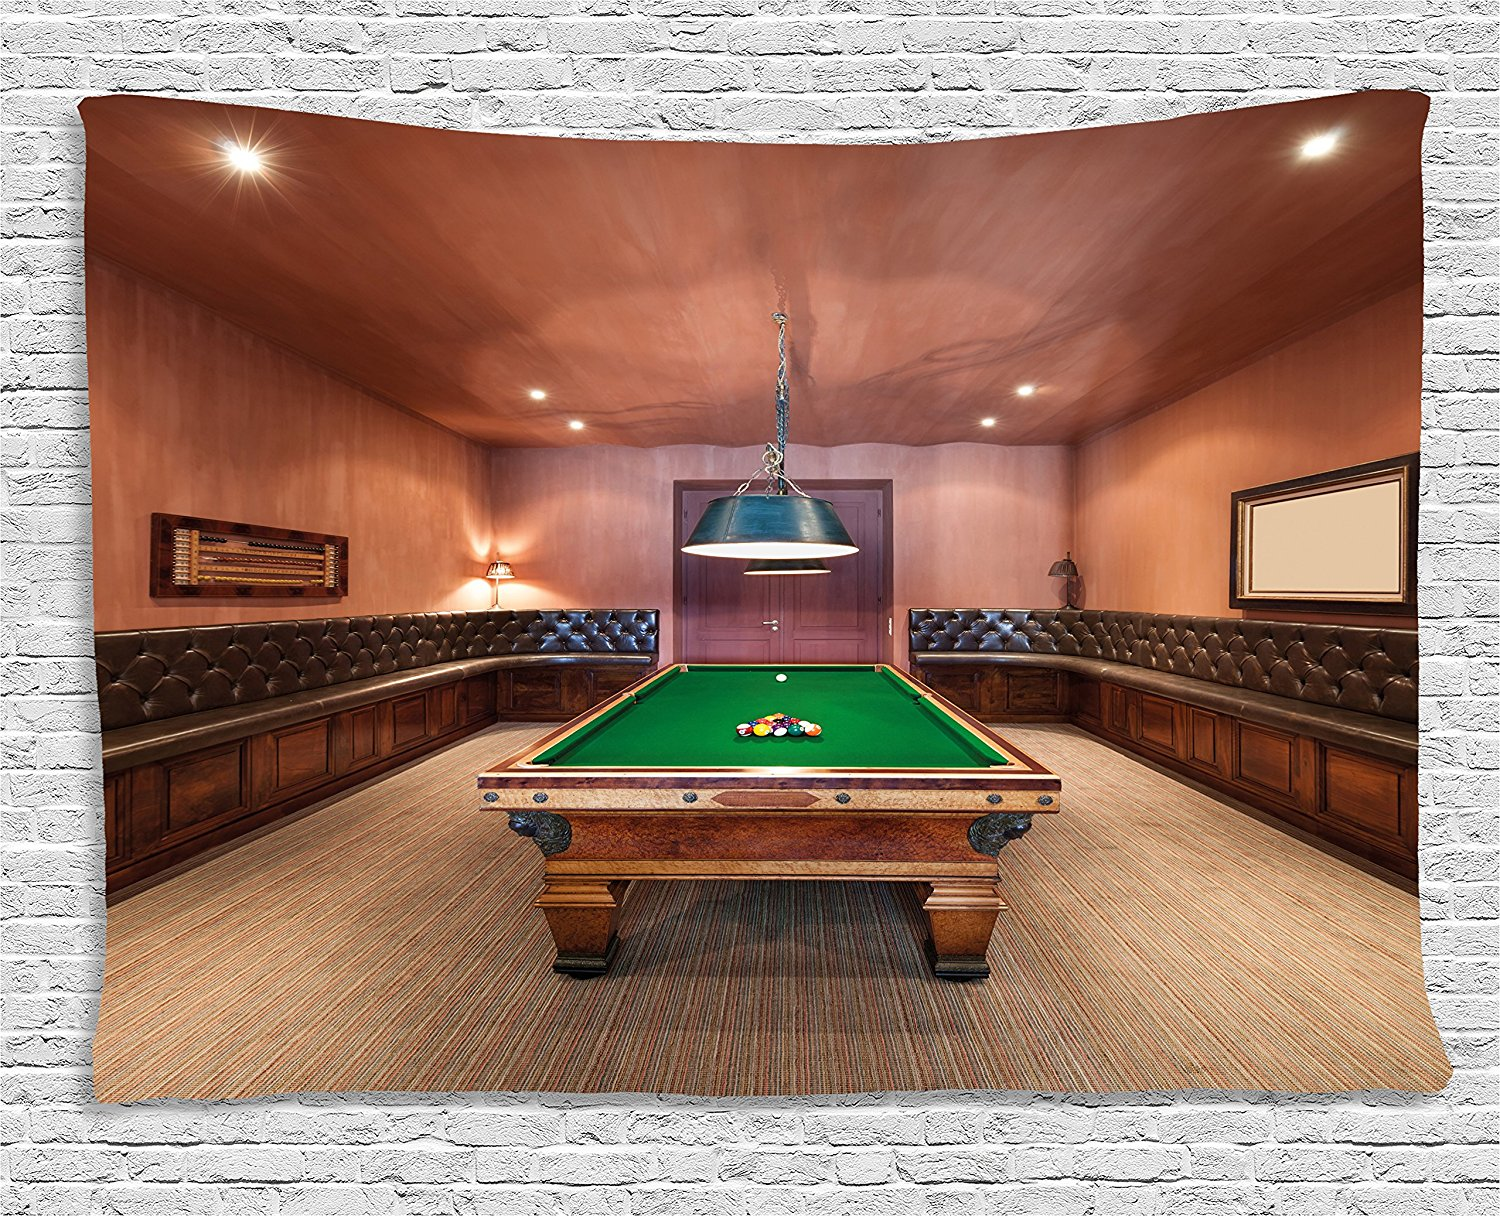 Modern Decor Tapestry, Entertainment Room in Mansion Pool Table Billiard Lifestyle Photo Print, Wall Hanging for Bedroom Dorm